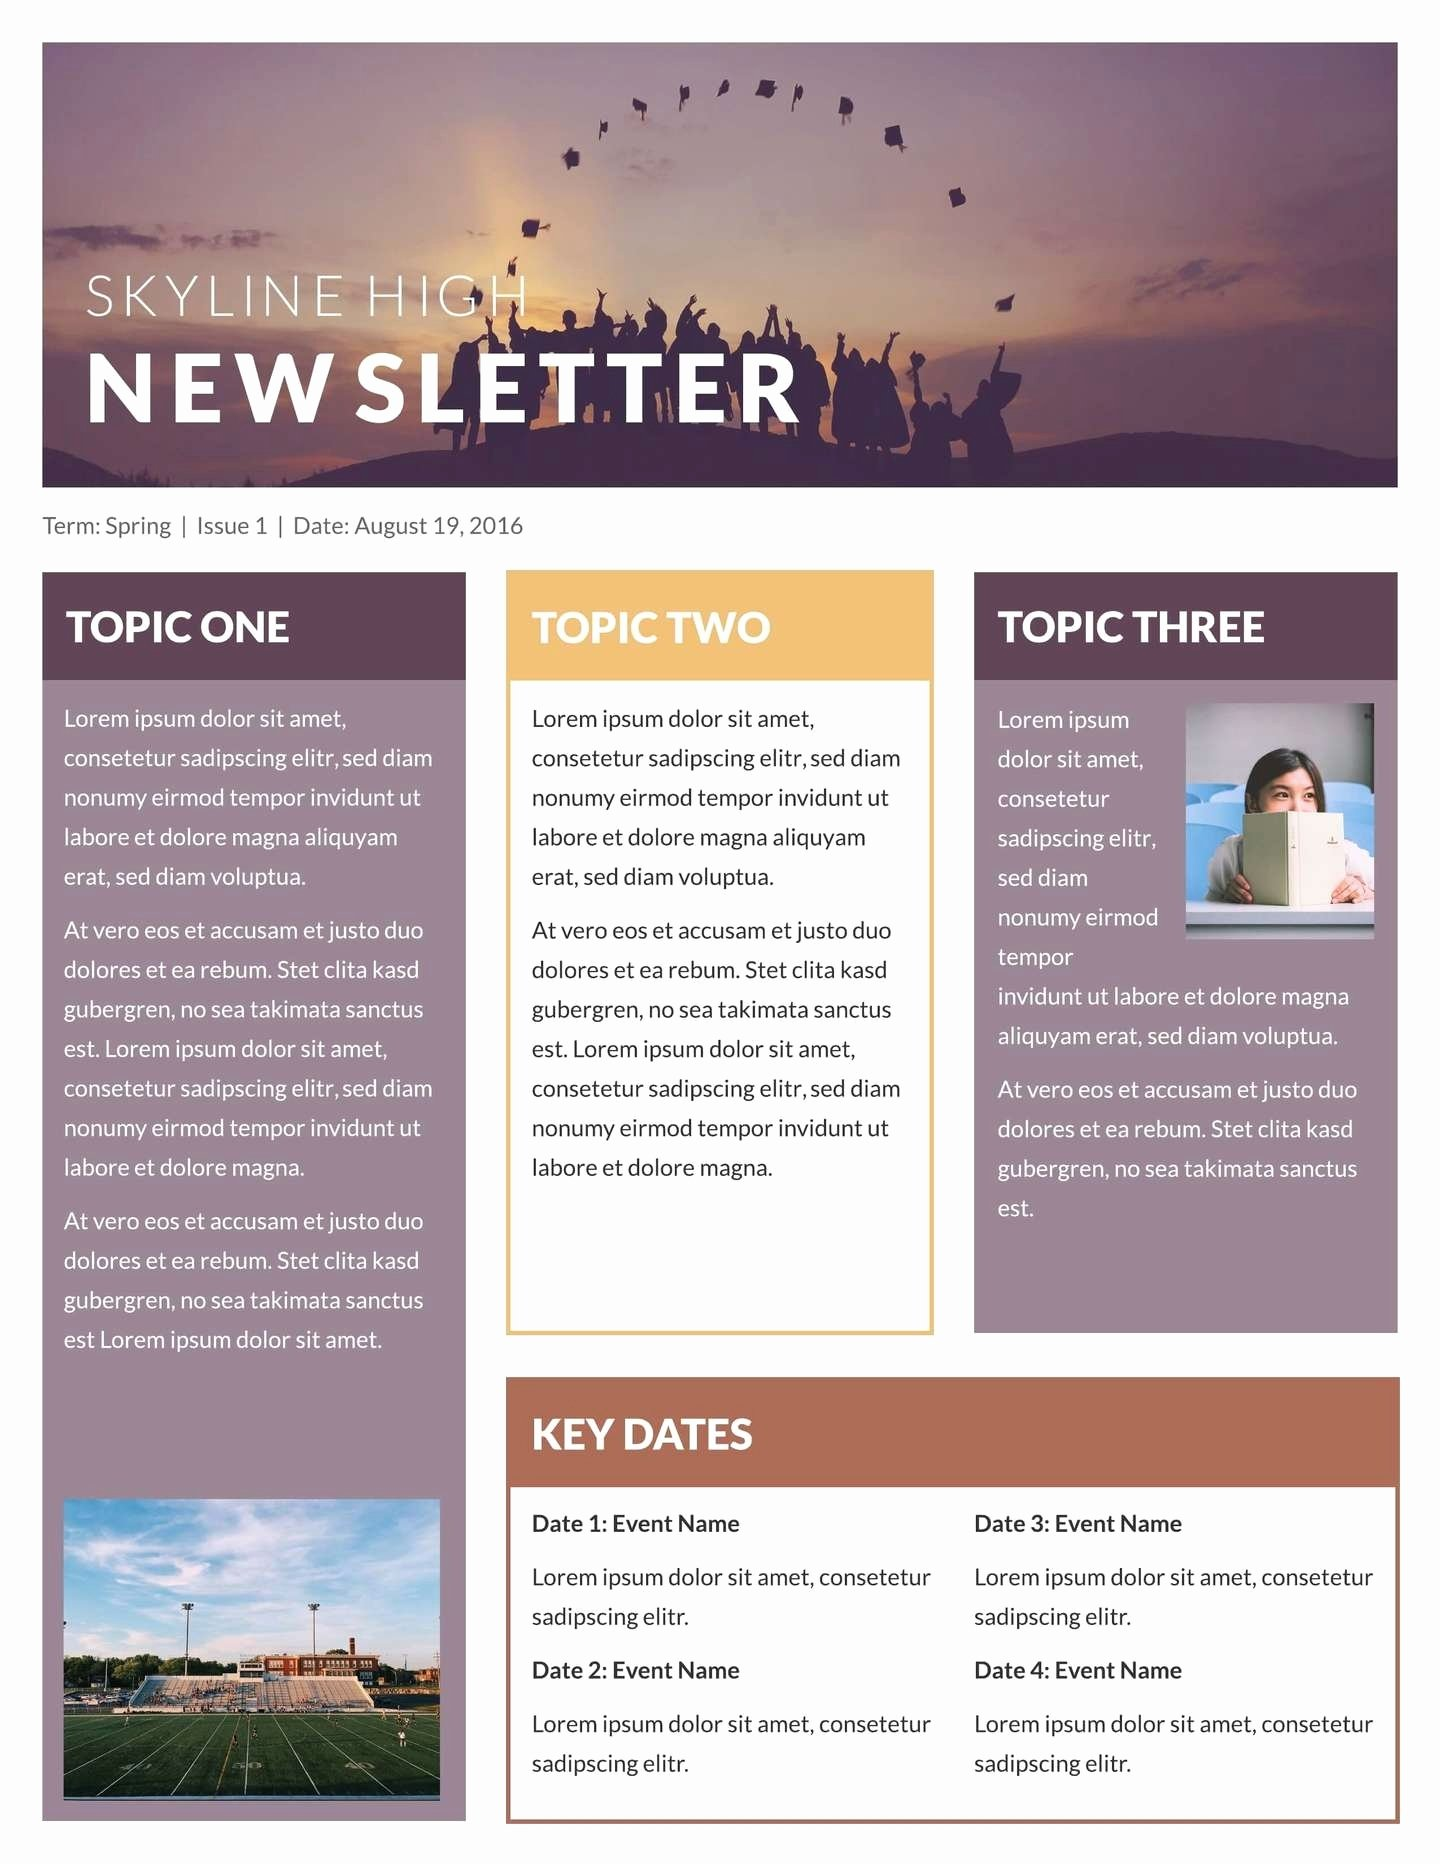 Homeowners association Newsletter Template Awesome Free Newsletter Templates Beepmunk